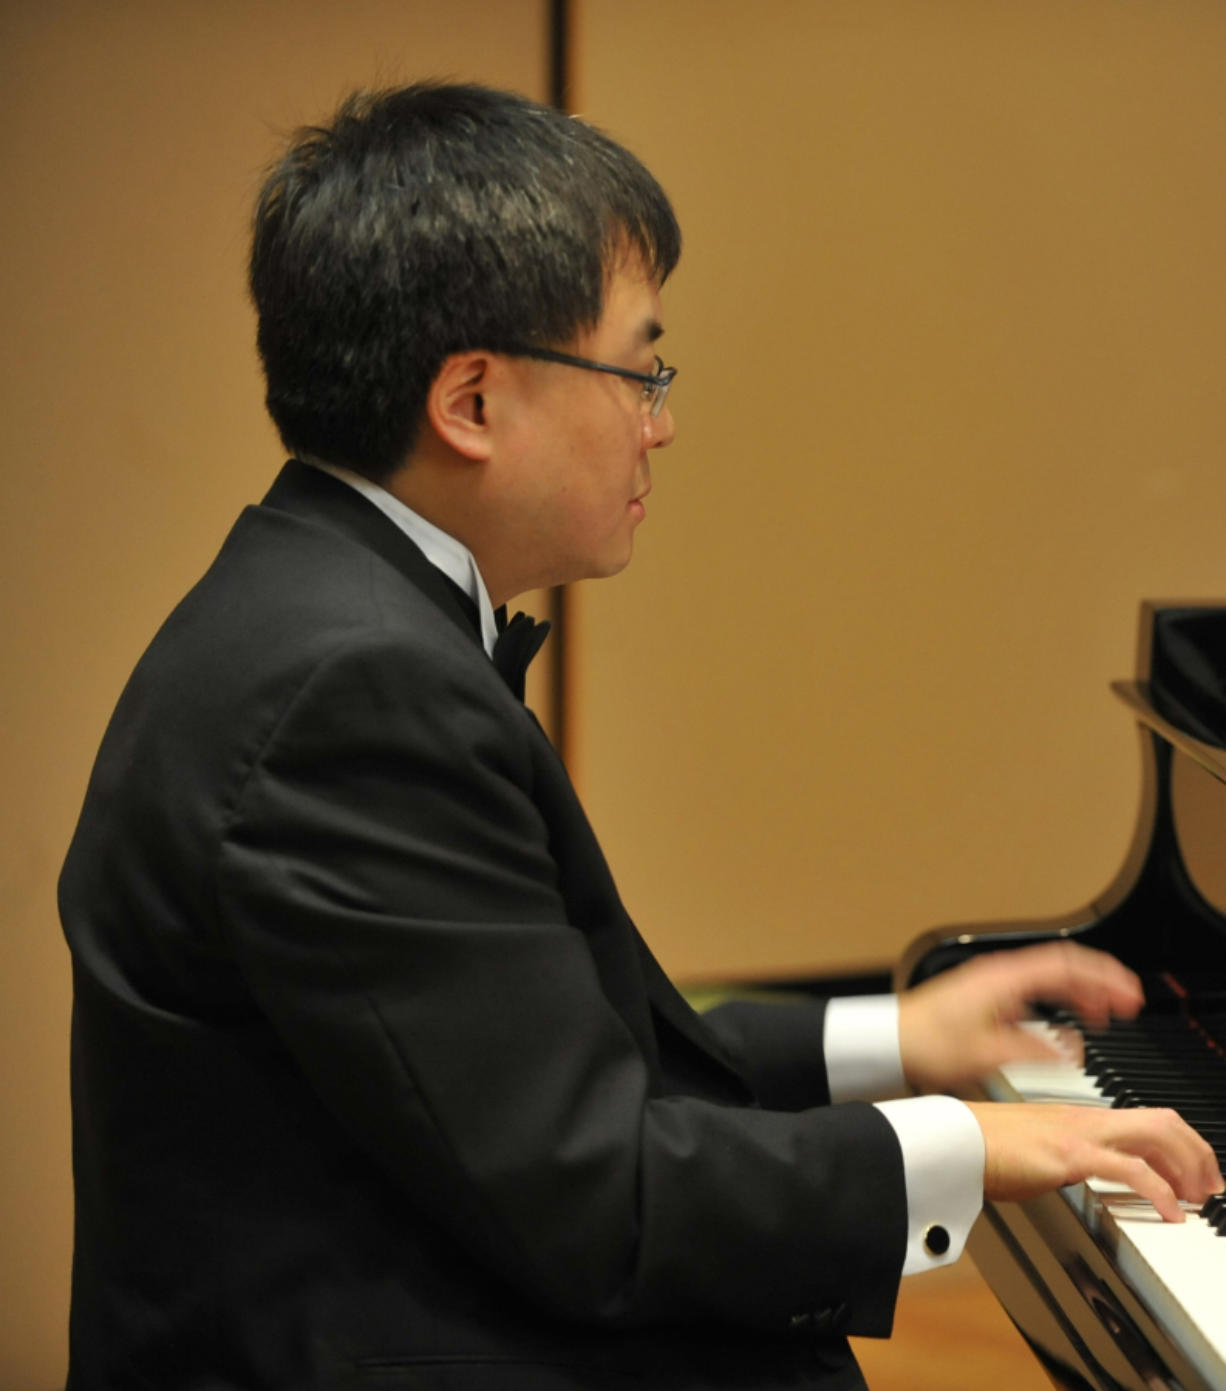 Pianist Michael Liu will perform during the Vancouver Symphony Orchestra's final concert of the season.